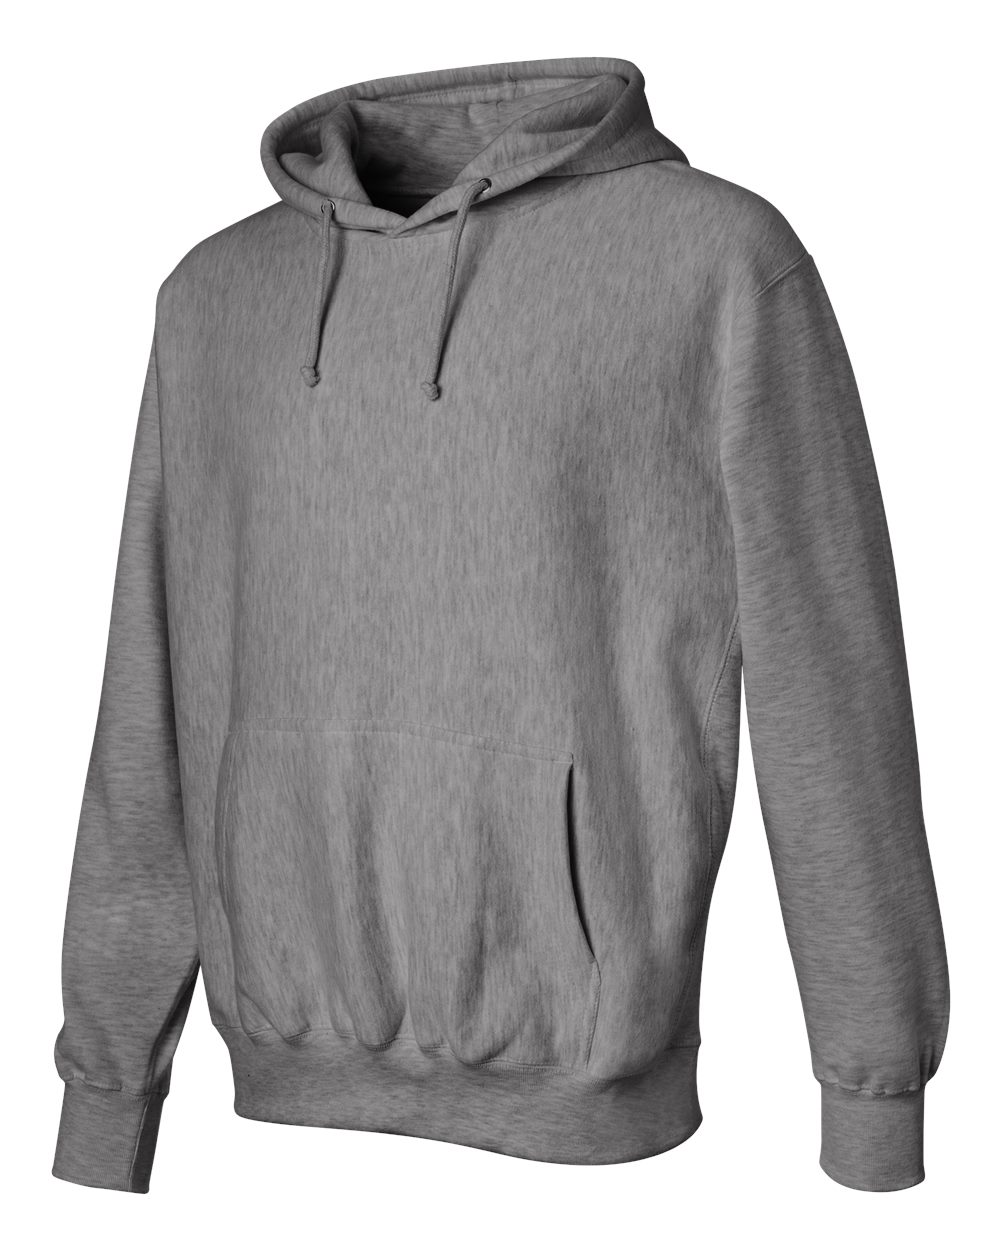 Weatherproof 7700 Cross Weave Hooded Sweatshirt